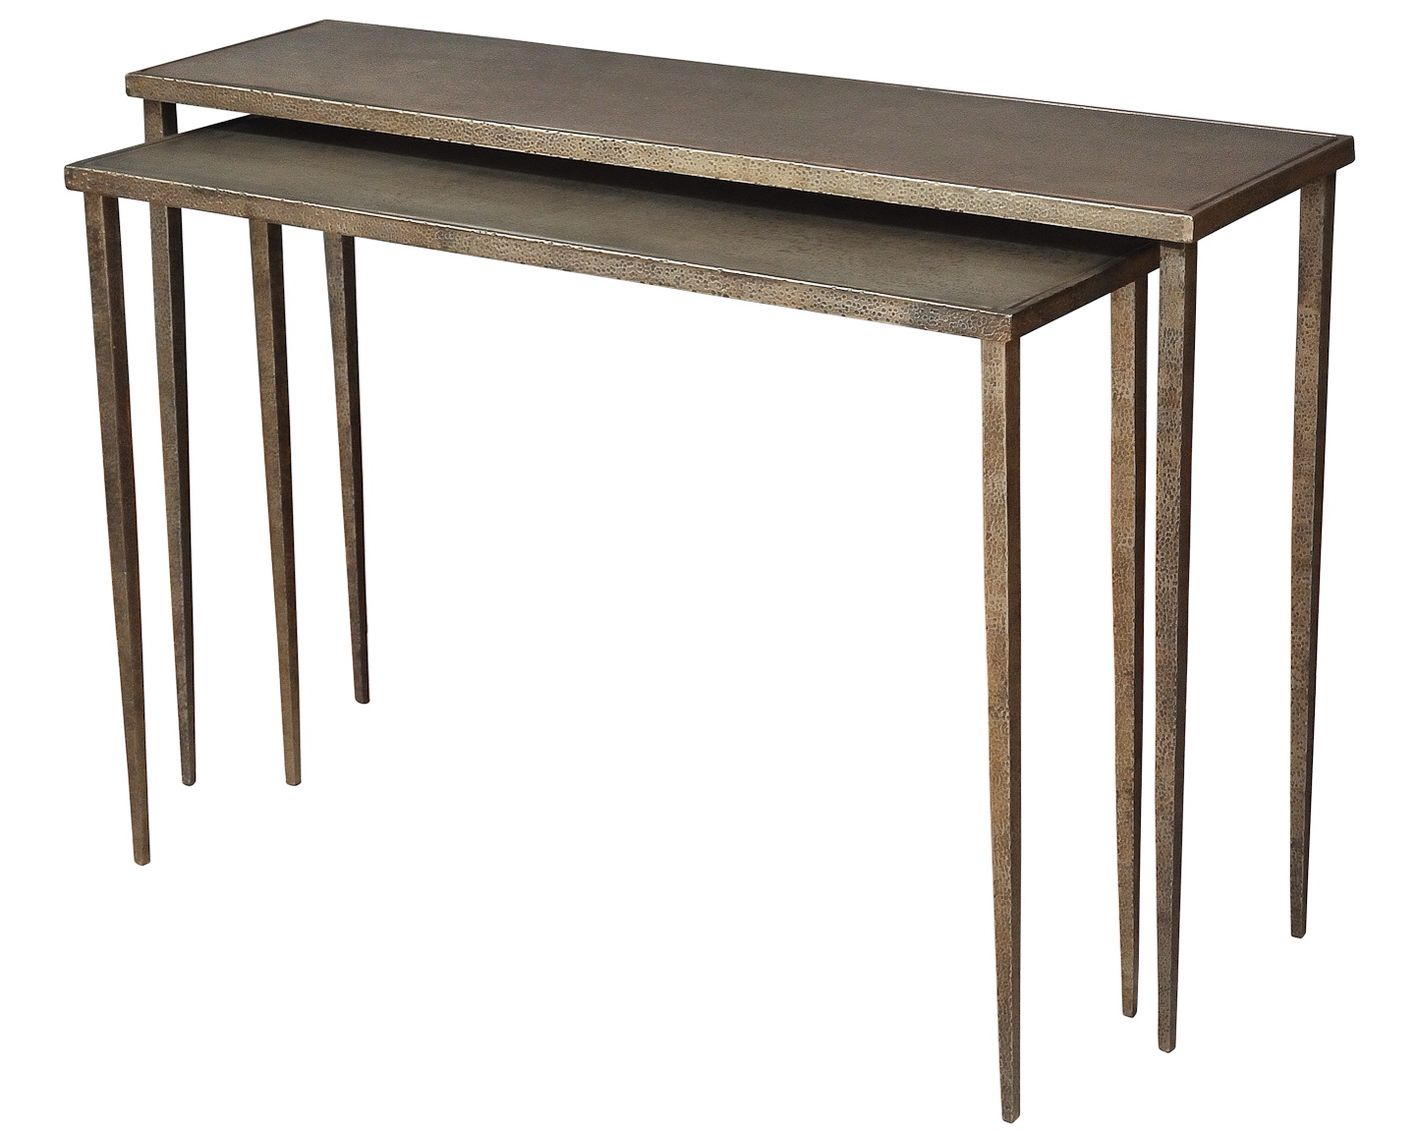 Hammered Sheet Metal Console Tables   My Designs   Pinterest Intended For Parsons Black Marble Top & Brass Base 48x16 Console Tables (View 6 of 30)